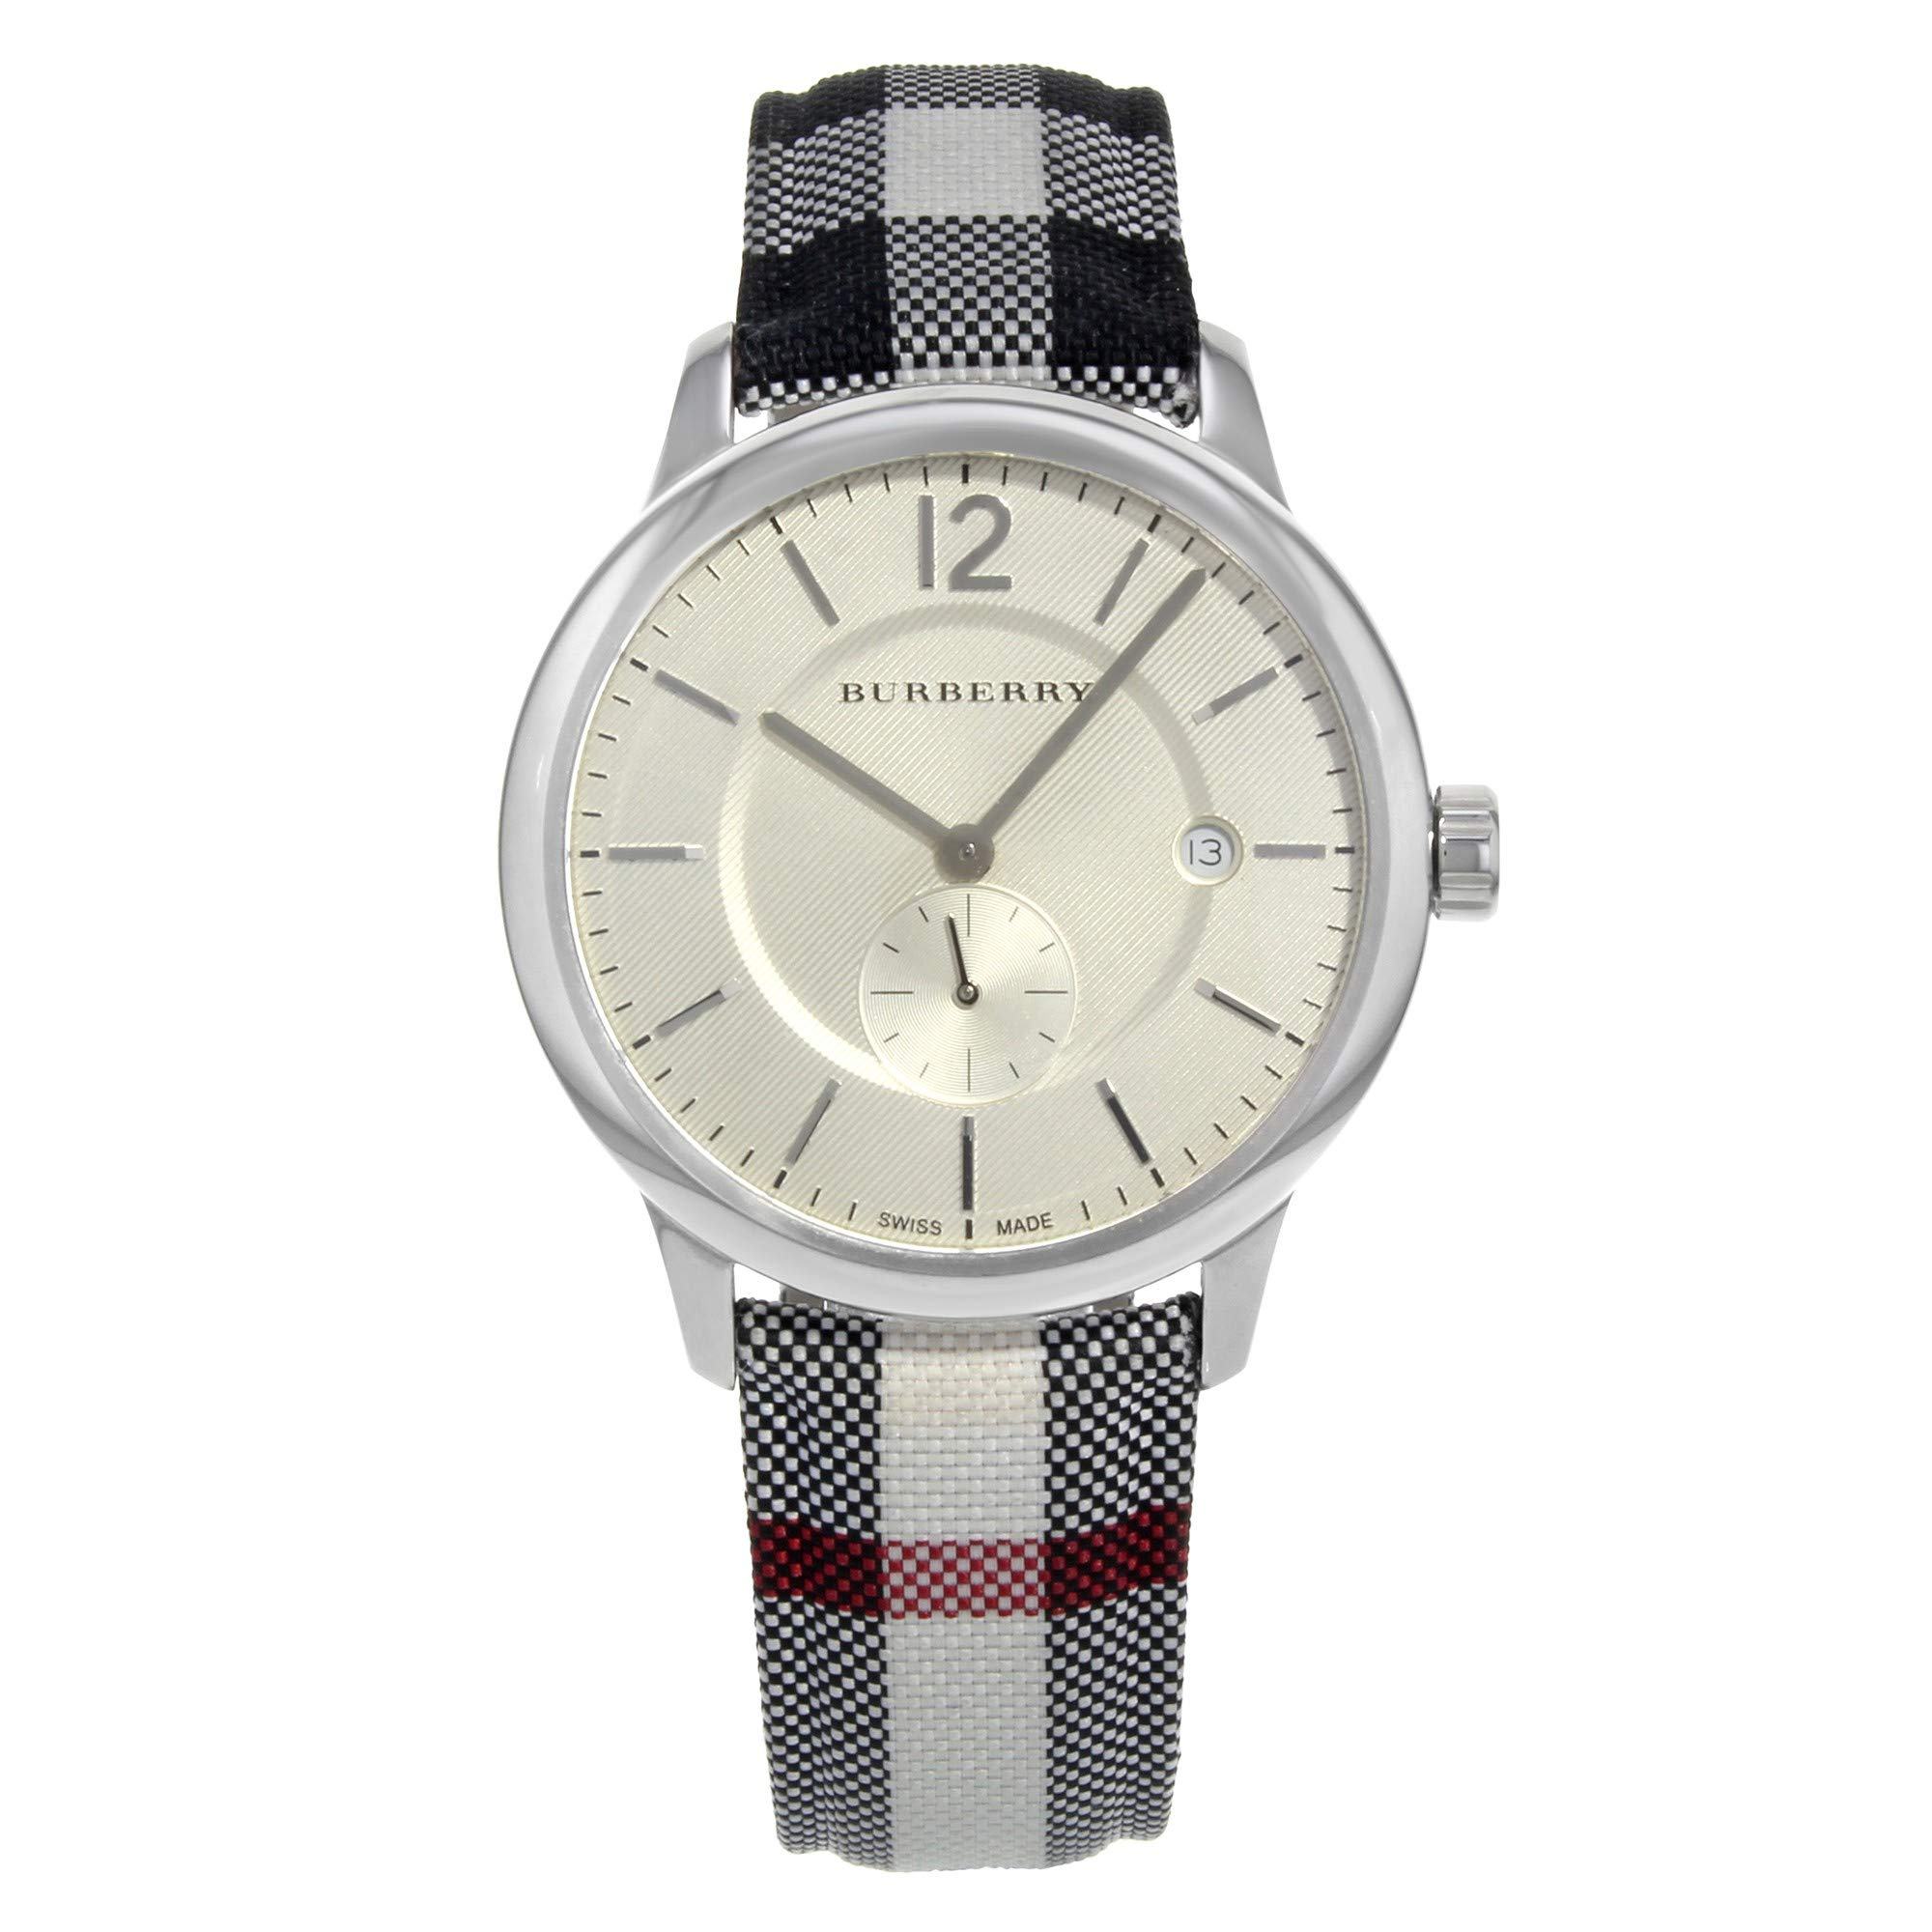 Burberry Horeseferry Quartz Male Watch BU10002 (Certified Pre-Owned)